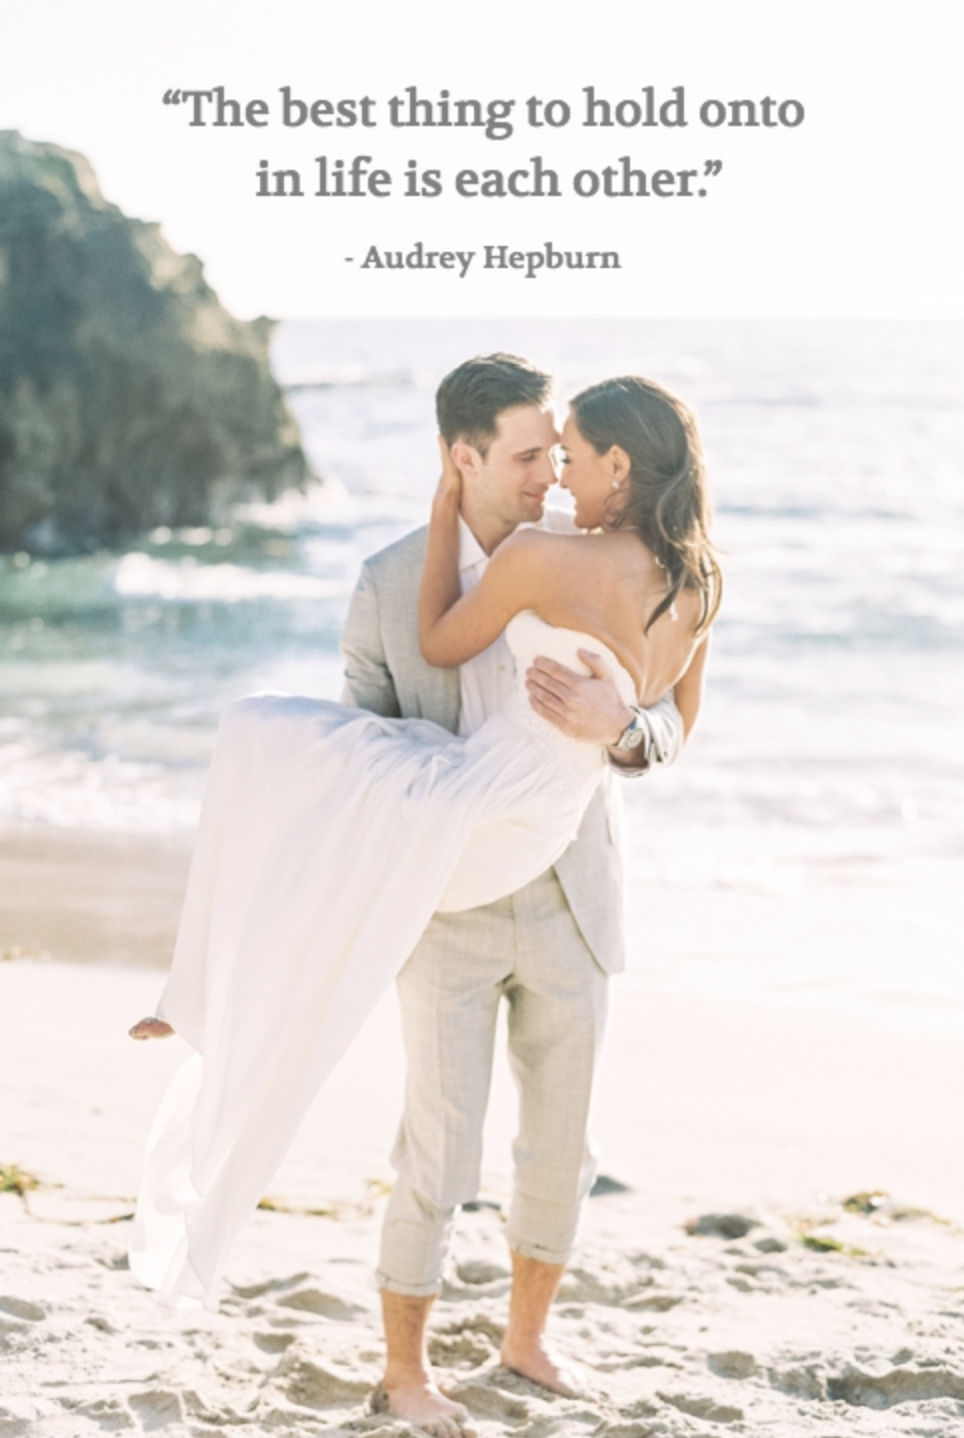 Wedding Quotes Romantic, Wedding Quotes 101 Romantic Quotes To Incorporate Into Your Vows